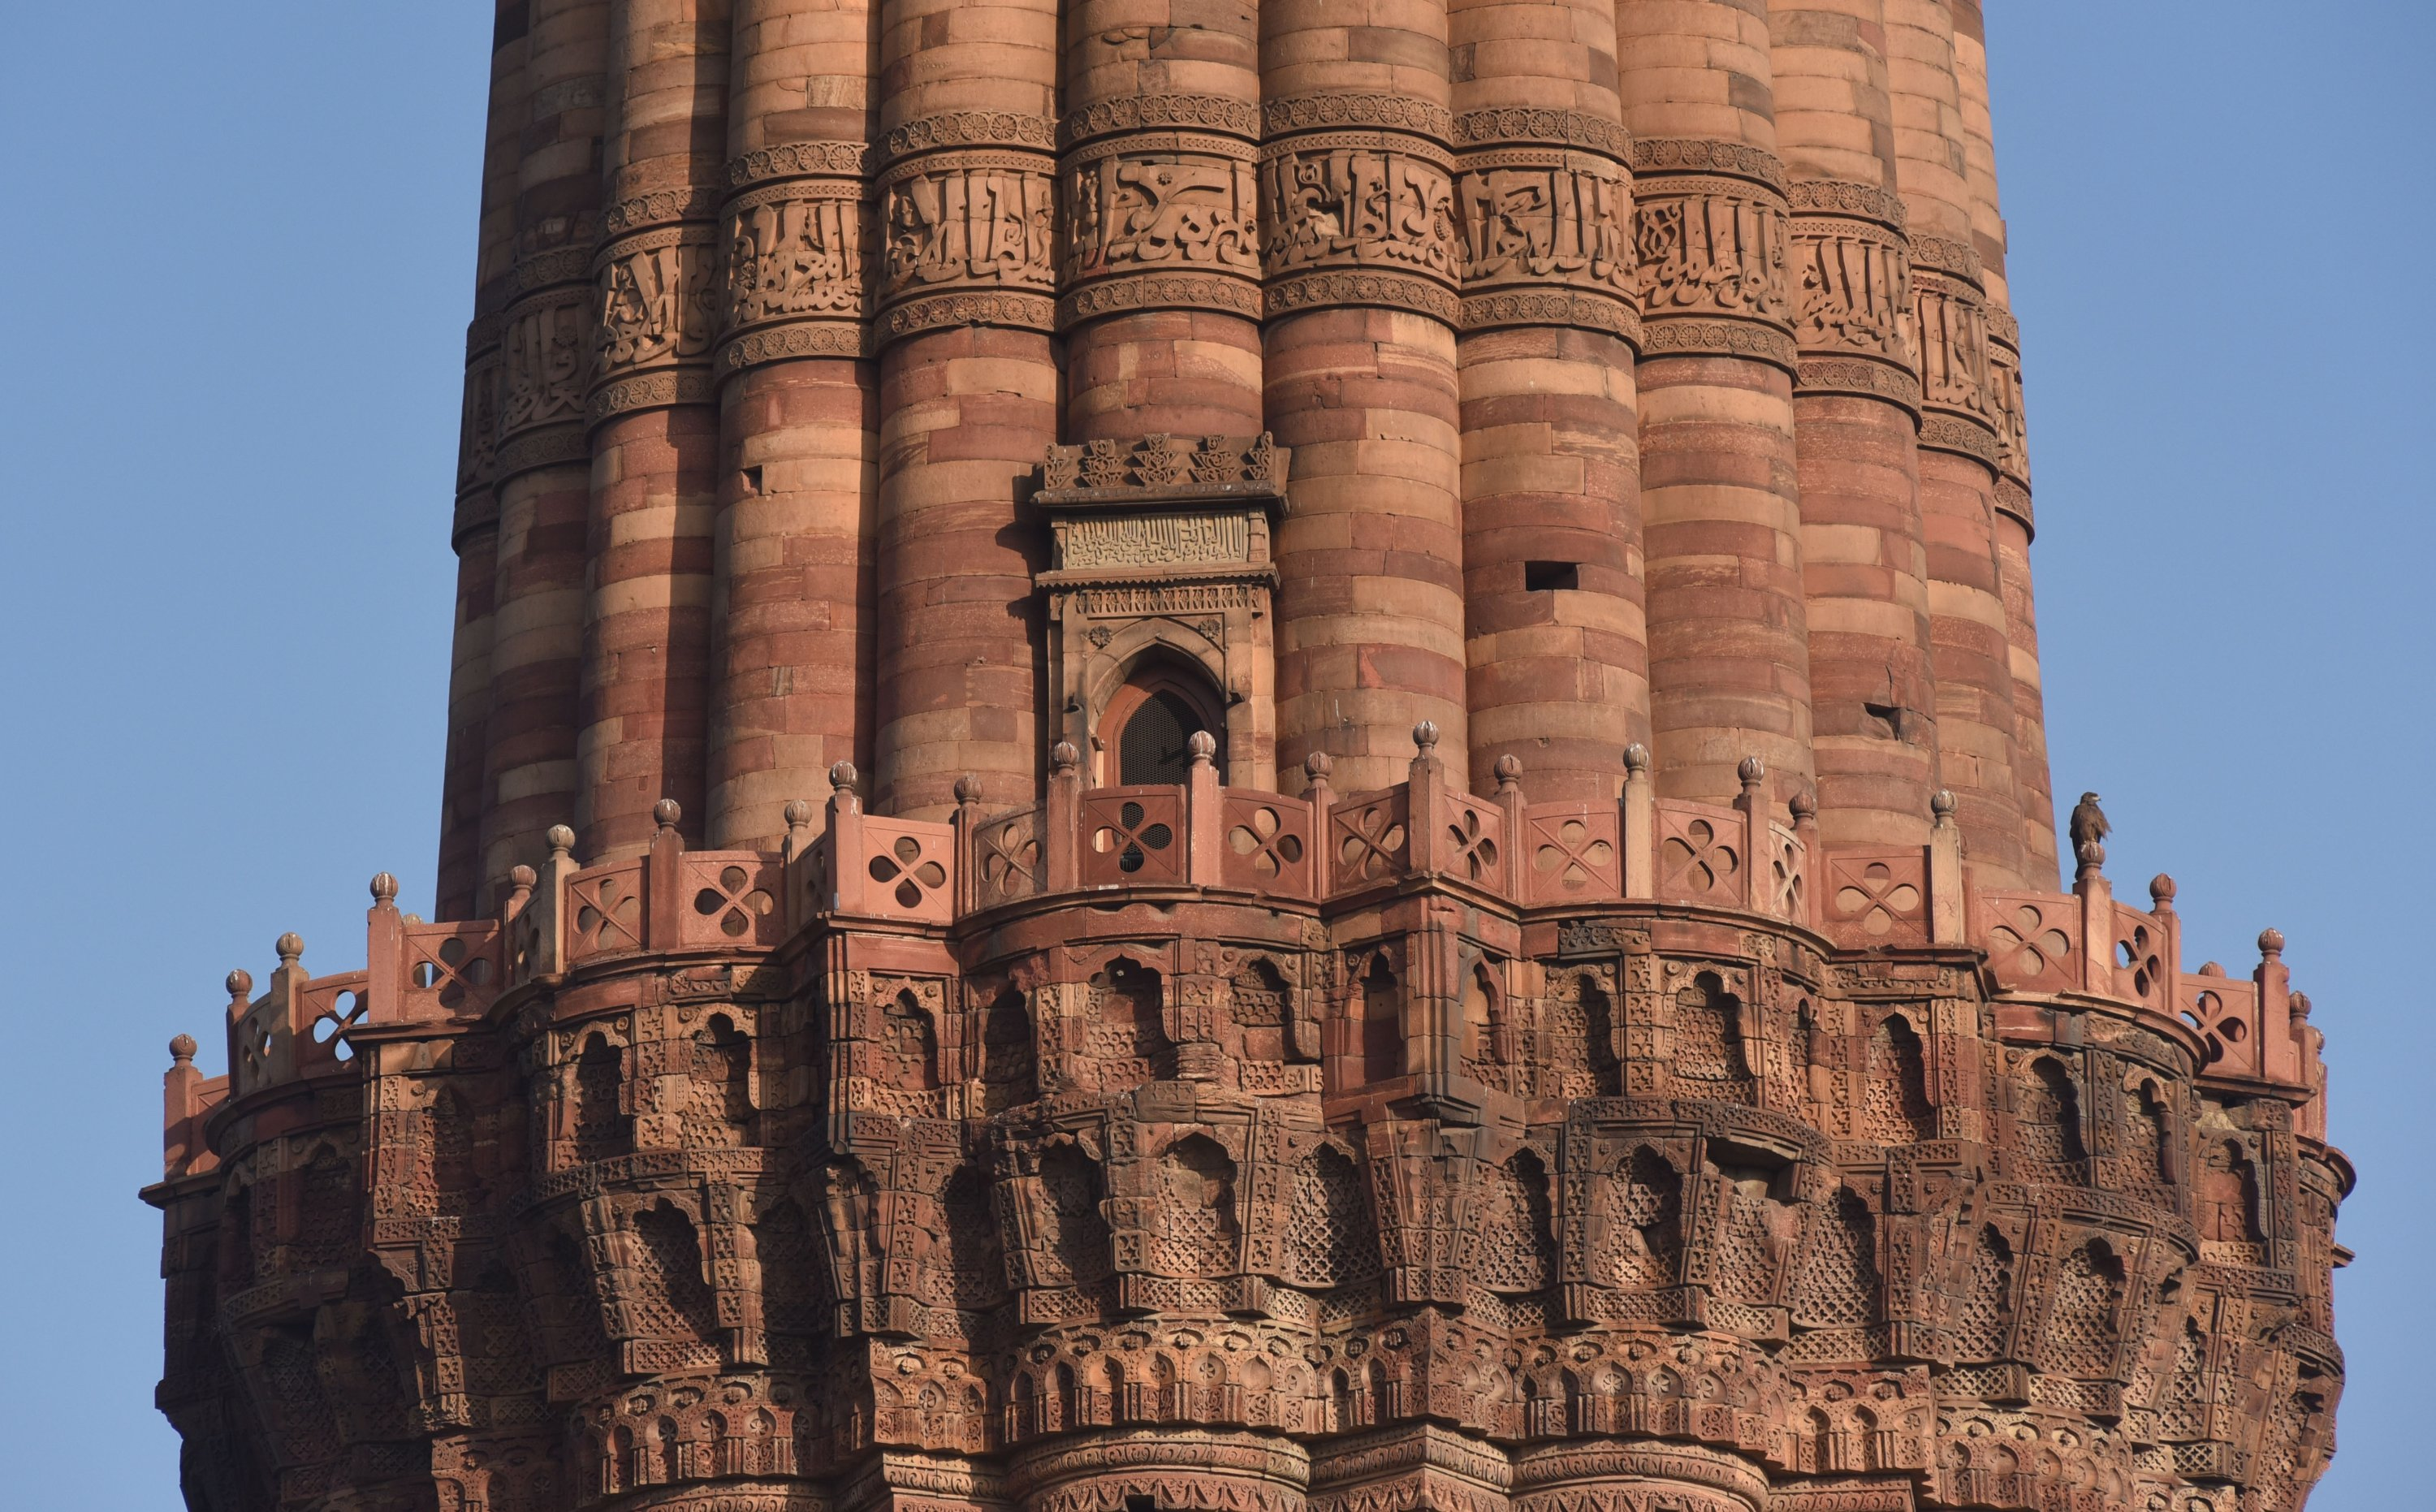 A close-up of details from the Qutub Minar in New Delhi,India, on Dec. 18, 2020. (AA PHOTO)